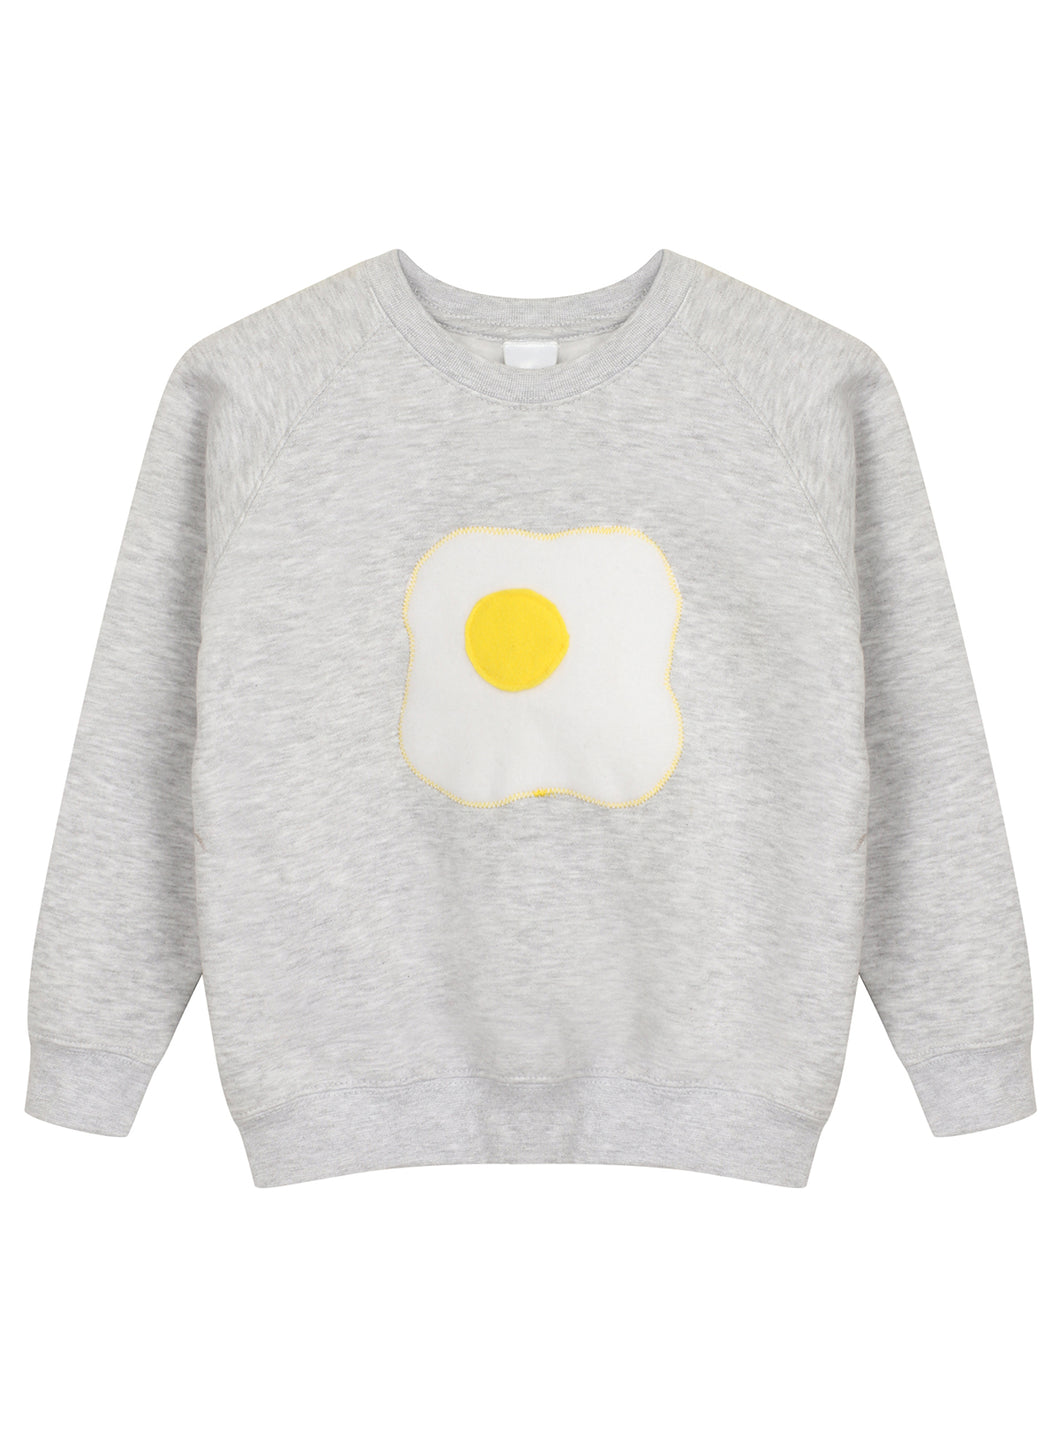 KIDS GREY EGG SWEATSHIRT - MCINDOE DESIGN - tropical - printed - clothing - travel - beach